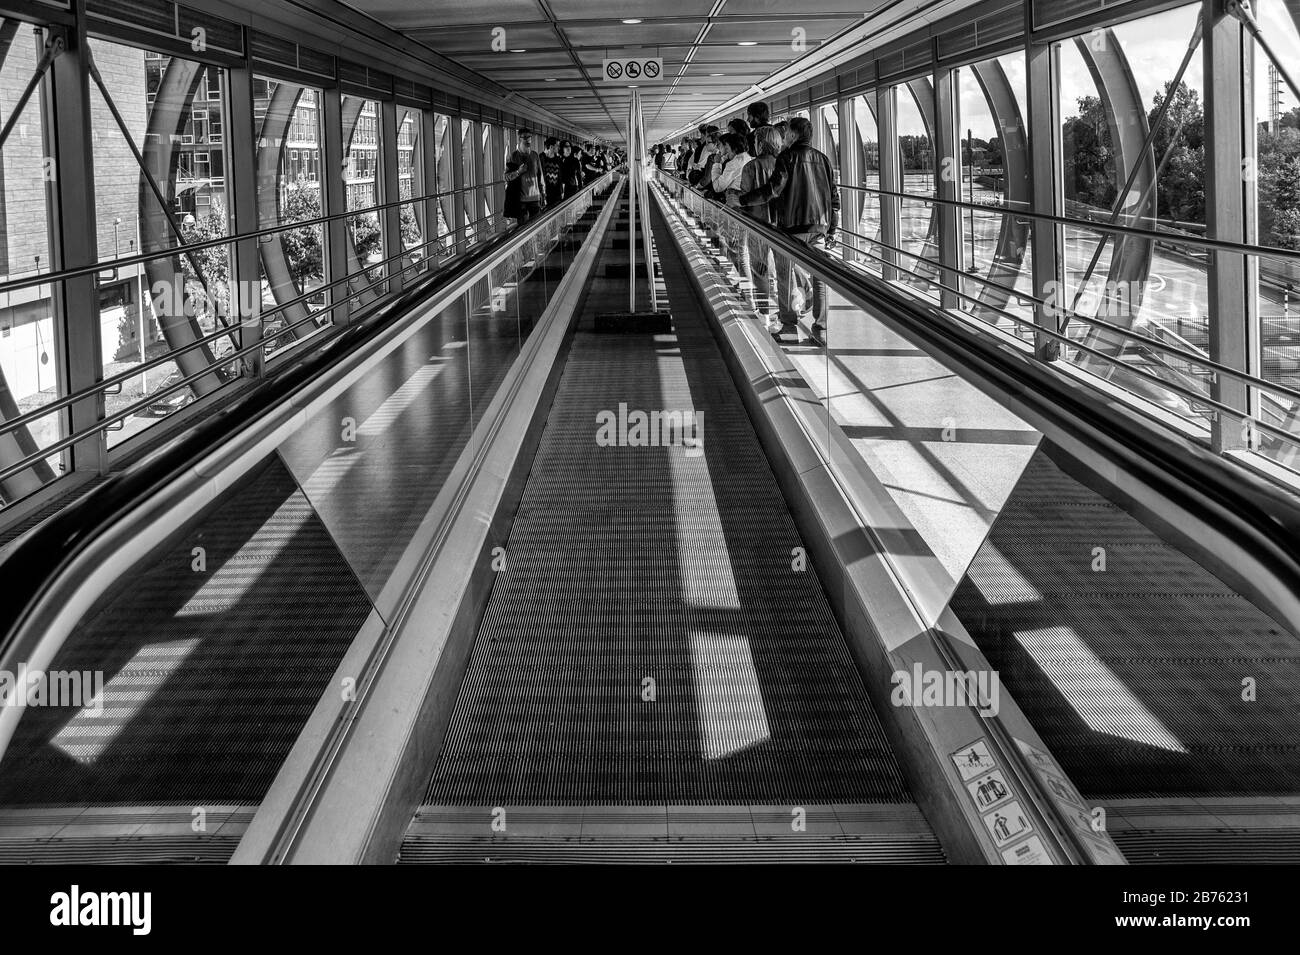 Germany Hannover 18 06 2016 Lumix Festival For Young Photojournalism In Hannover On 18 06 2016 Exhibition In The Skywalk Of The University Of Applied Sciences And Arts Hannover Automated Translation Stock Photo Alamy